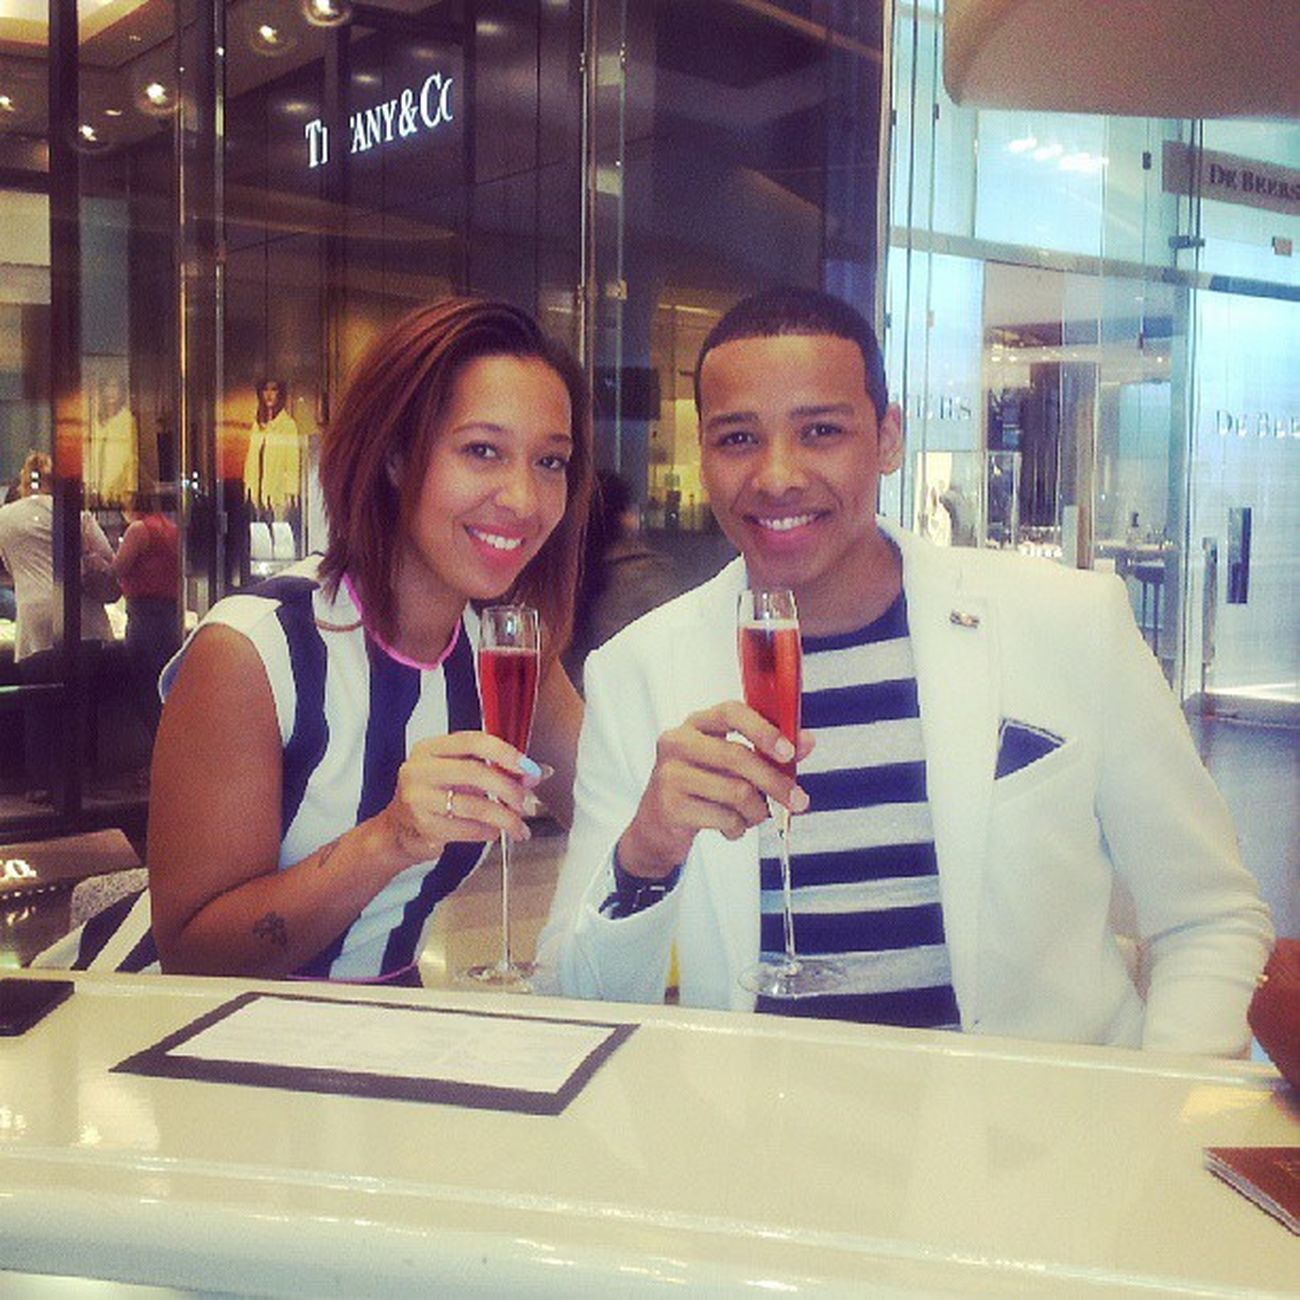 Shampagne Tine with @malaika03 Posh Drinks London WestfieldMall red matchingoutfits accidental fashionstylist instafashion igers tbt igdaily instamood hqppy